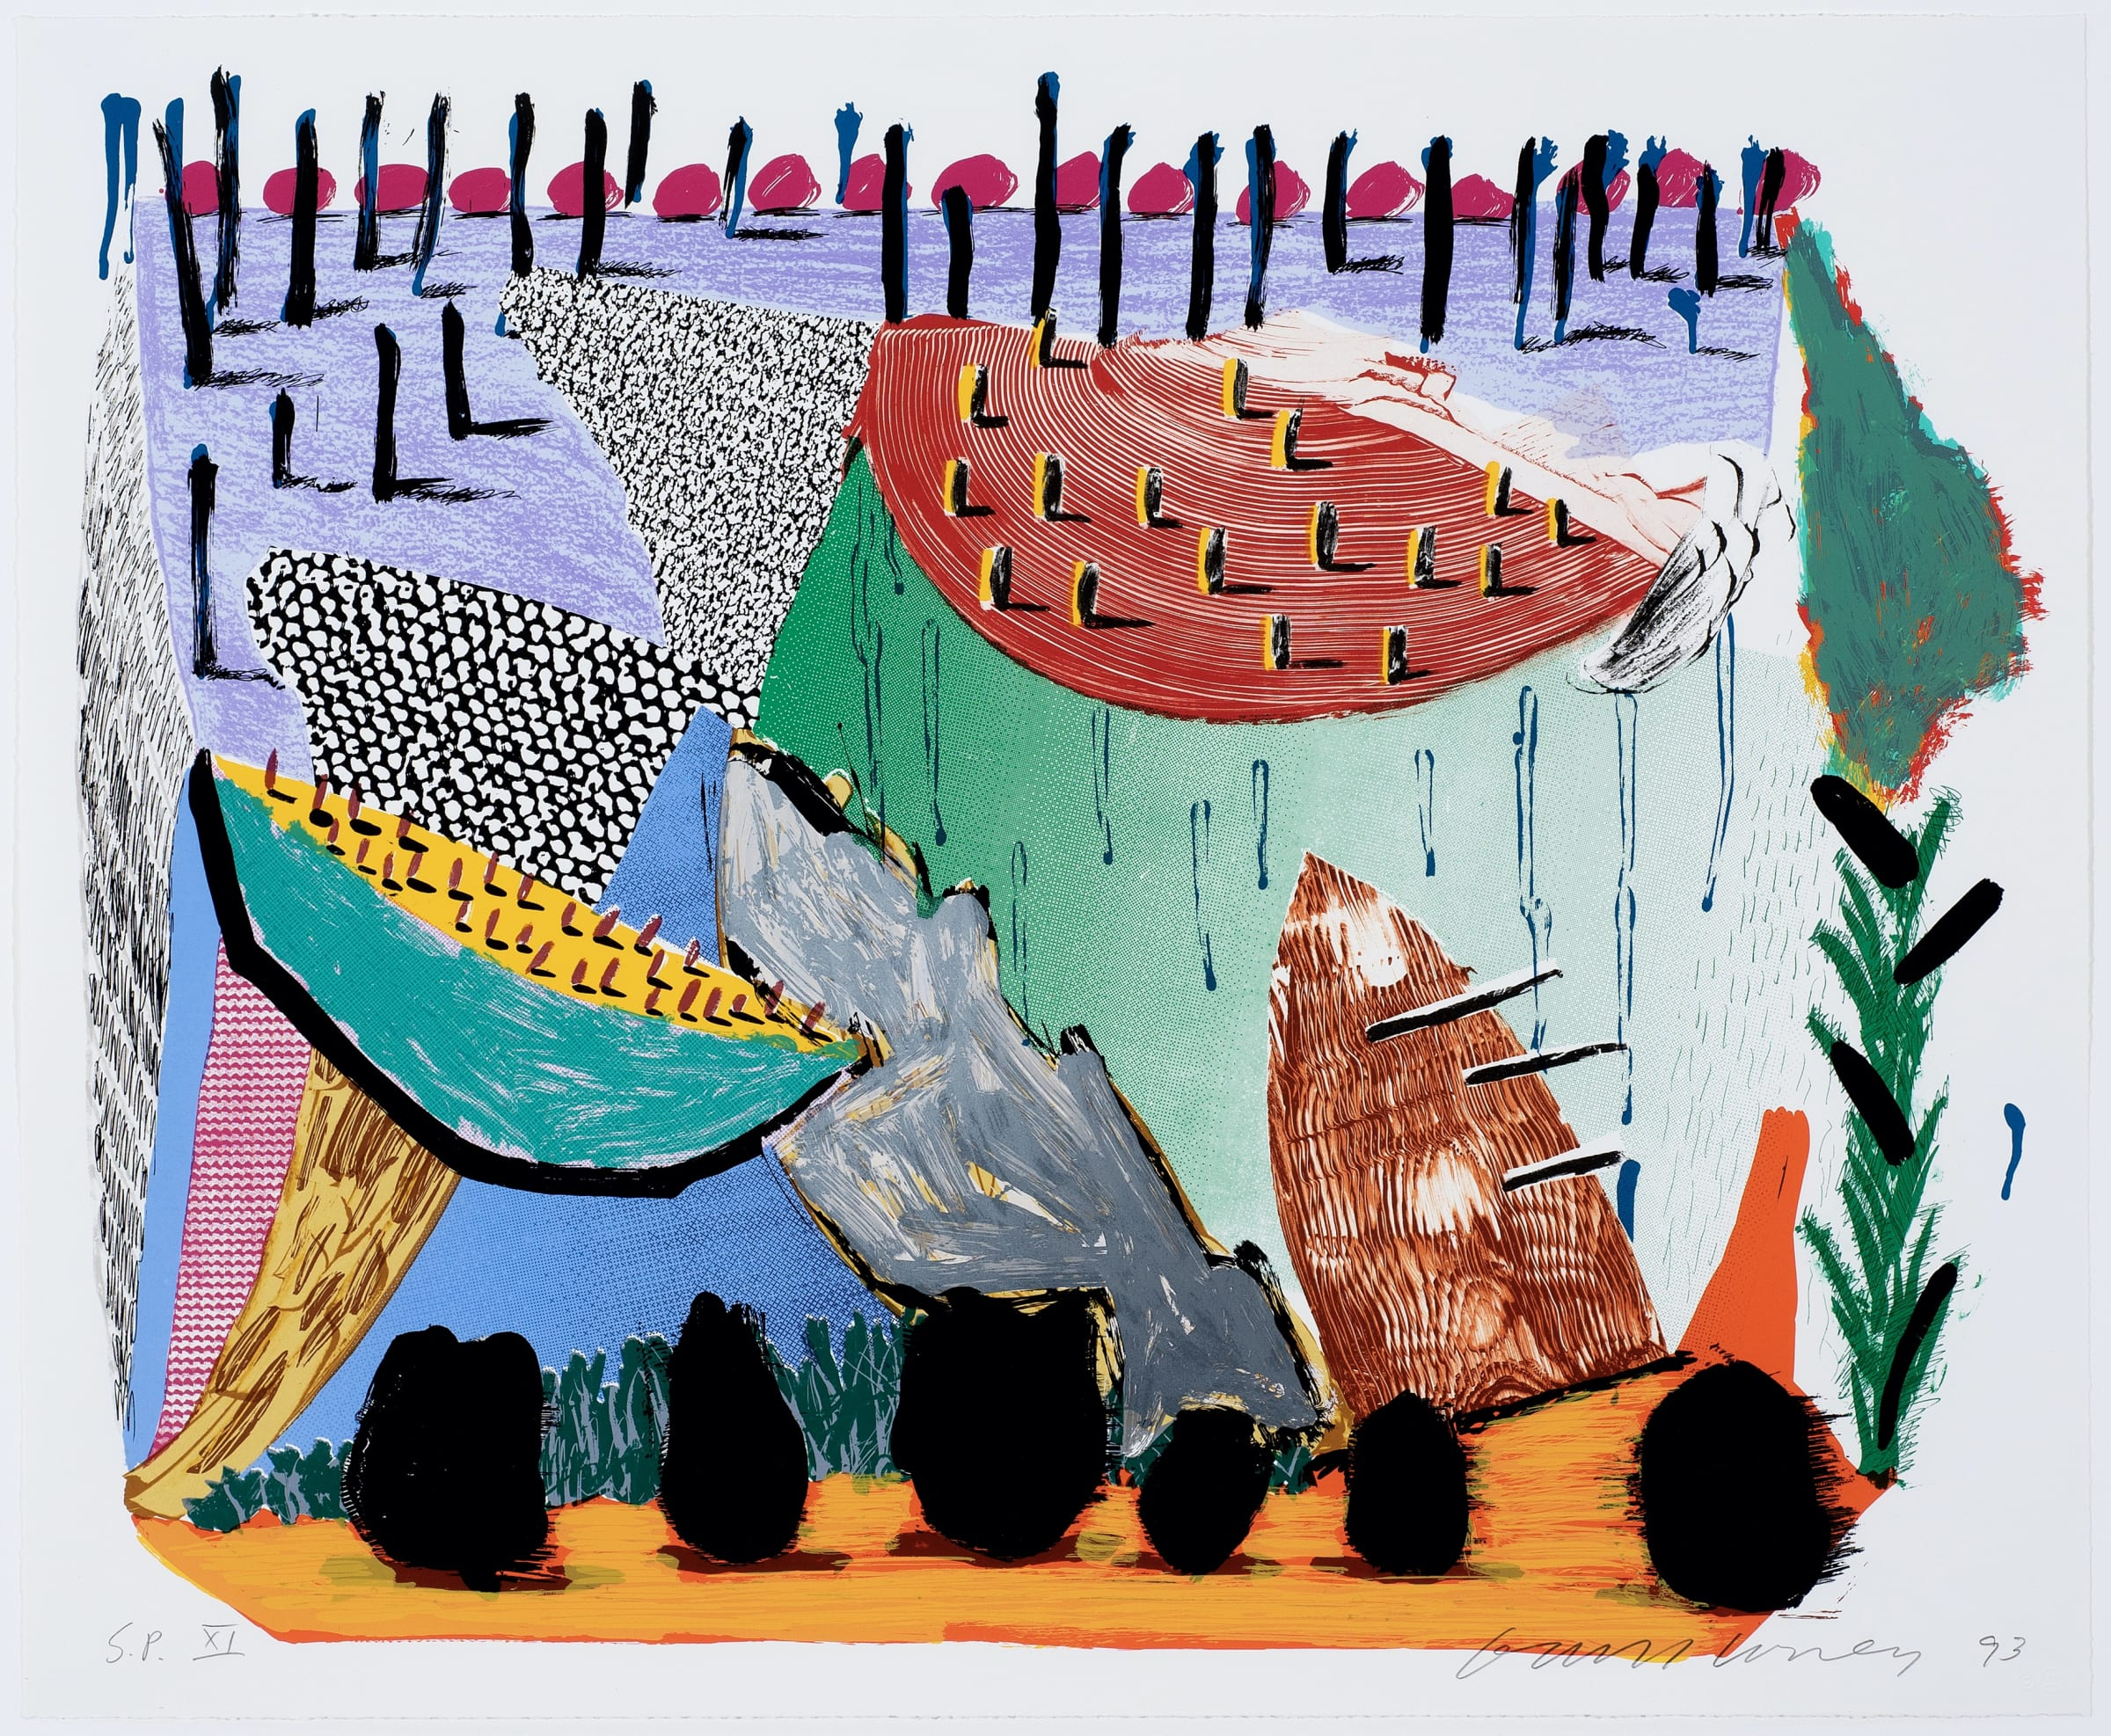 """<span class=""""link fancybox-details-link""""><a href=""""/artists/43-david-hockney/works/1228-david-hockney-slow-rise-1993/"""">View Detail Page</a></span><div class=""""artist""""><strong>David Hockney</strong></div> b.1937 <div class=""""title""""><em>Slow Rise</em>, 1993</div> <div class=""""medium"""">lithograph and screenprint</div> <div class=""""dimensions"""">25 x 30 3/4 in<br /> 63.5 x 78.1 cm</div> <div class=""""edition_details"""">SP XI / XXX aside from the edition of 68, from Some New Prints, on Arches 88 wove paper, with the blindstamp of the publisher, Gemini G.E.L., Los Angeles, and with their inkstamp on the verso, framed</div>"""